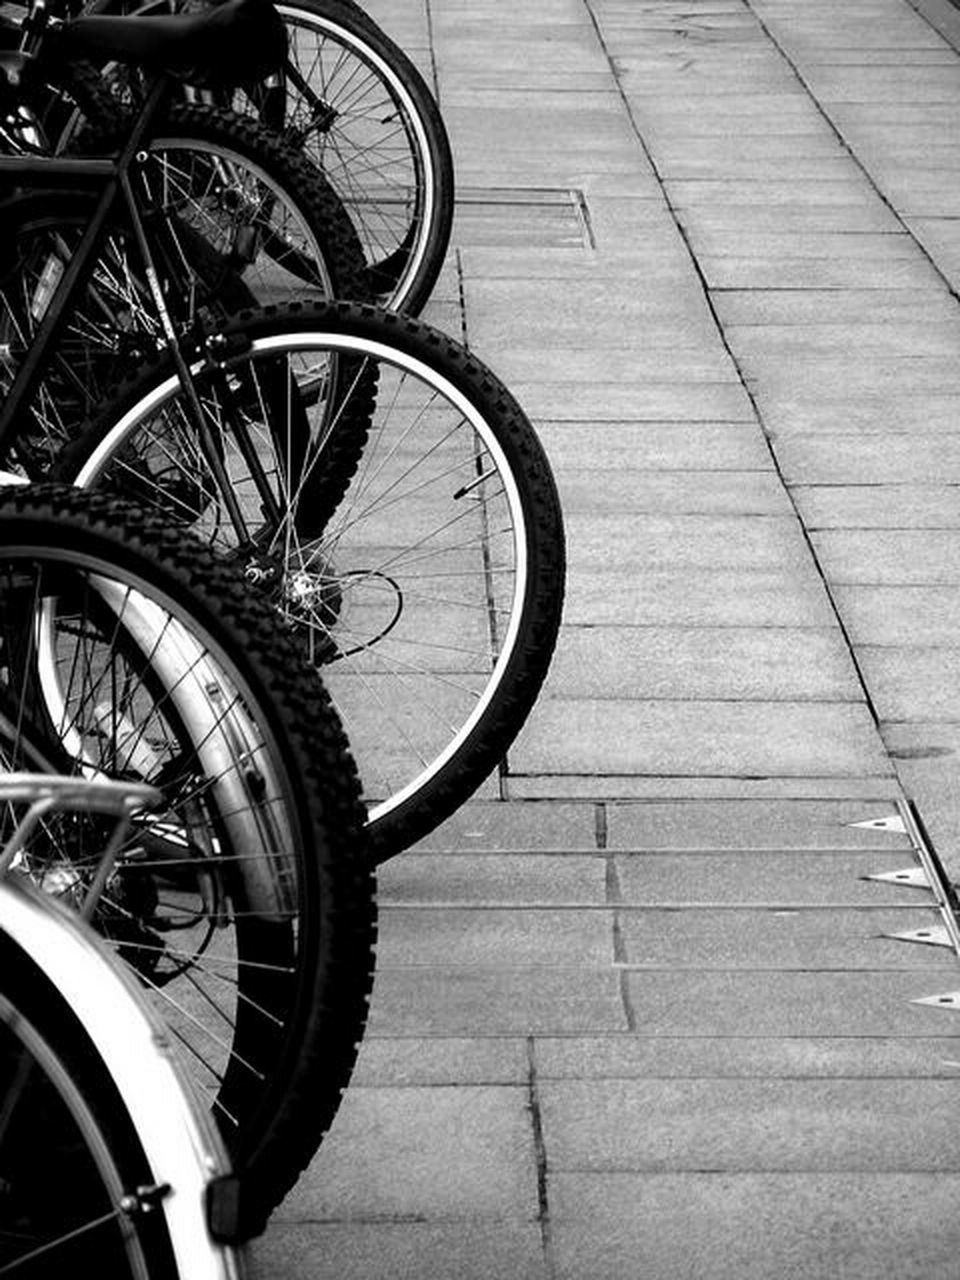 bicycle, transportation, mode of transport, land vehicle, stationary, wheel, day, outdoors, bicycle rack, spoke, tire, no people